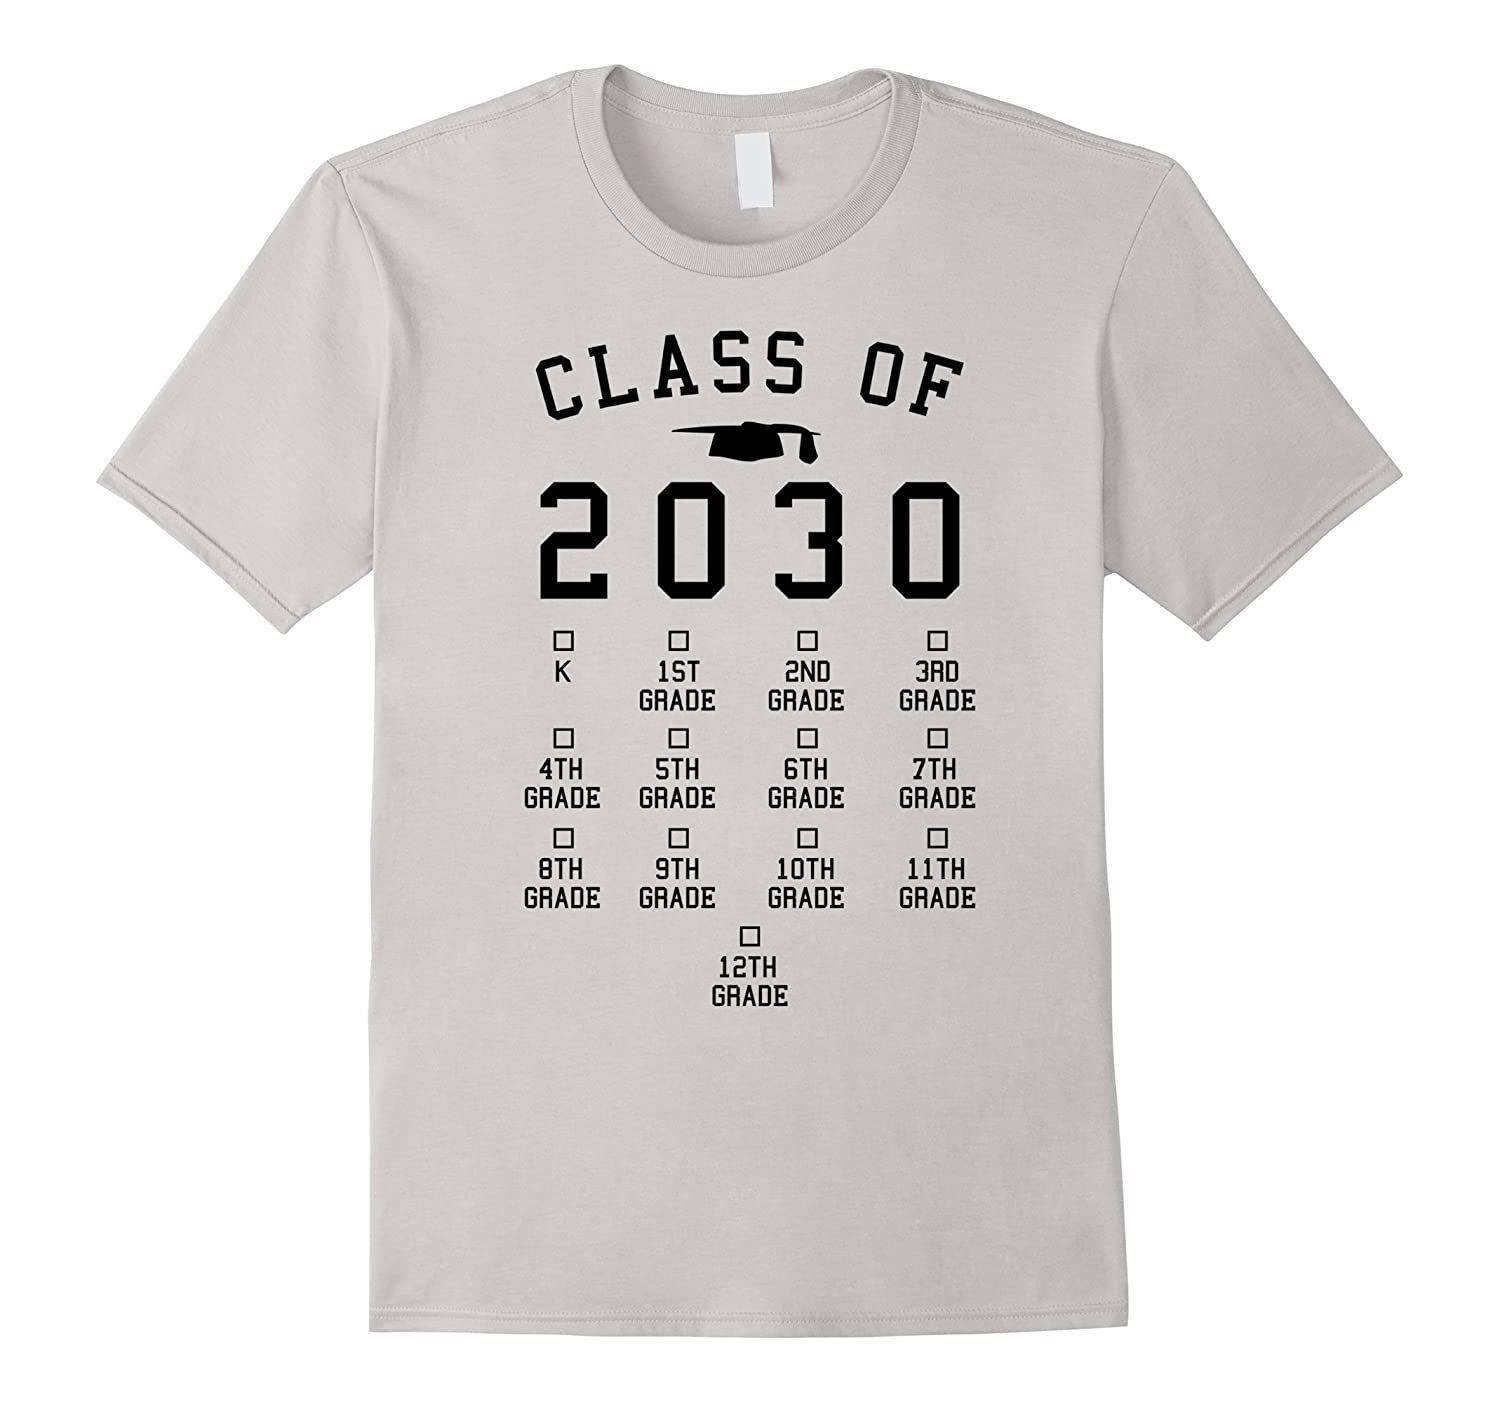 Class of 2030 Grow with me shirt with space for checkmarks-Teesml